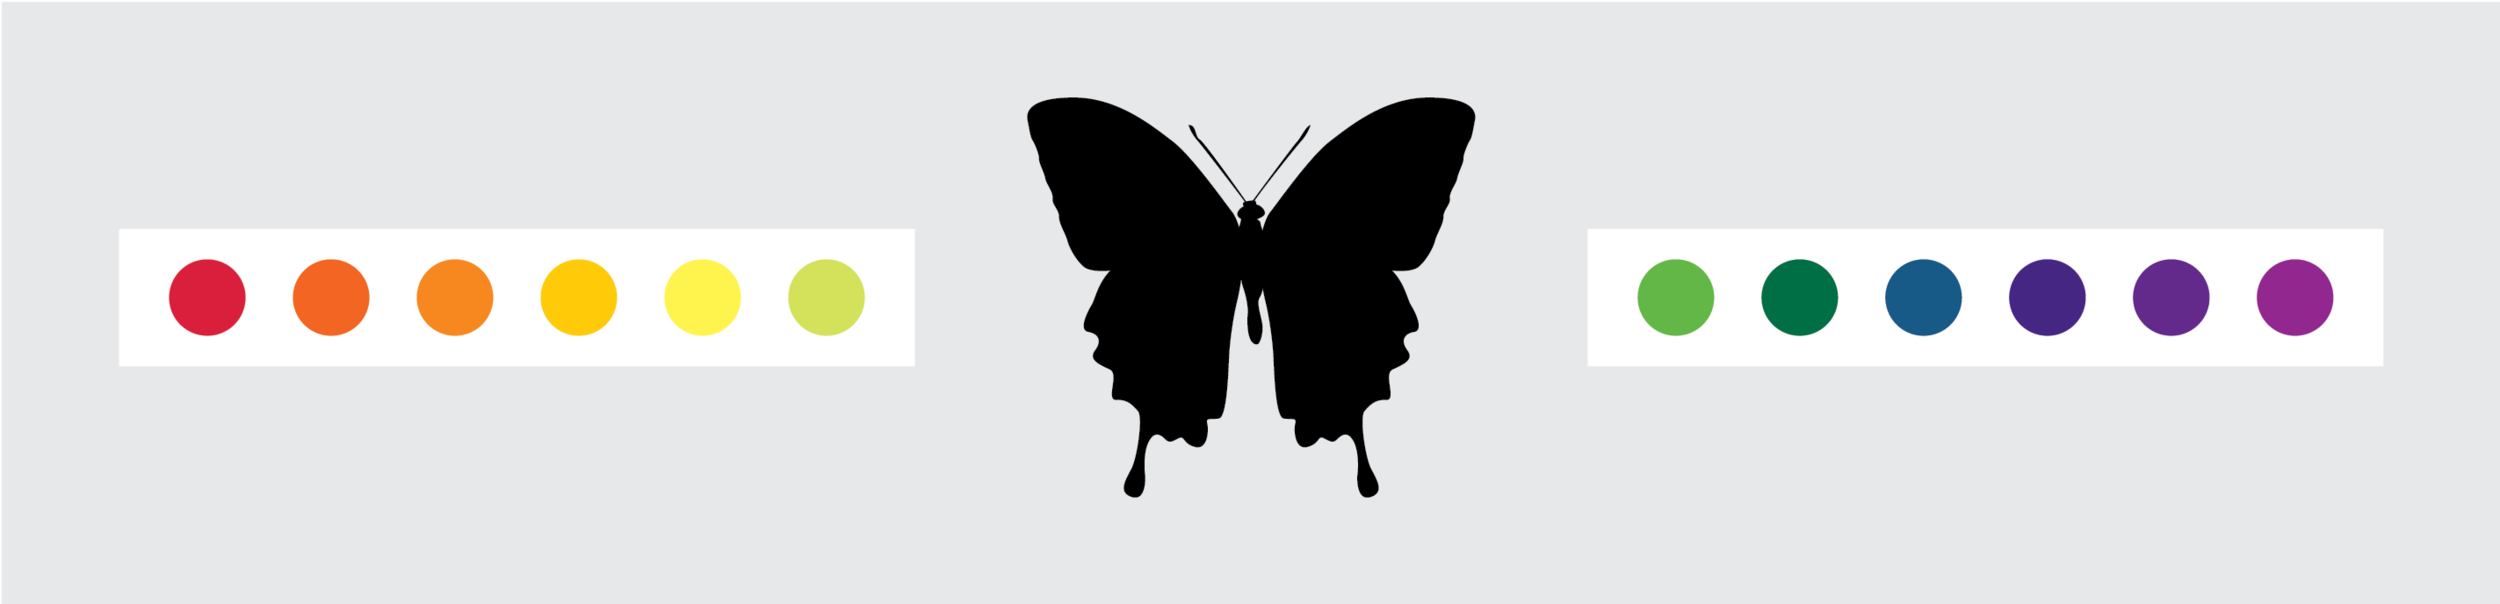 butterfly-03-1.png